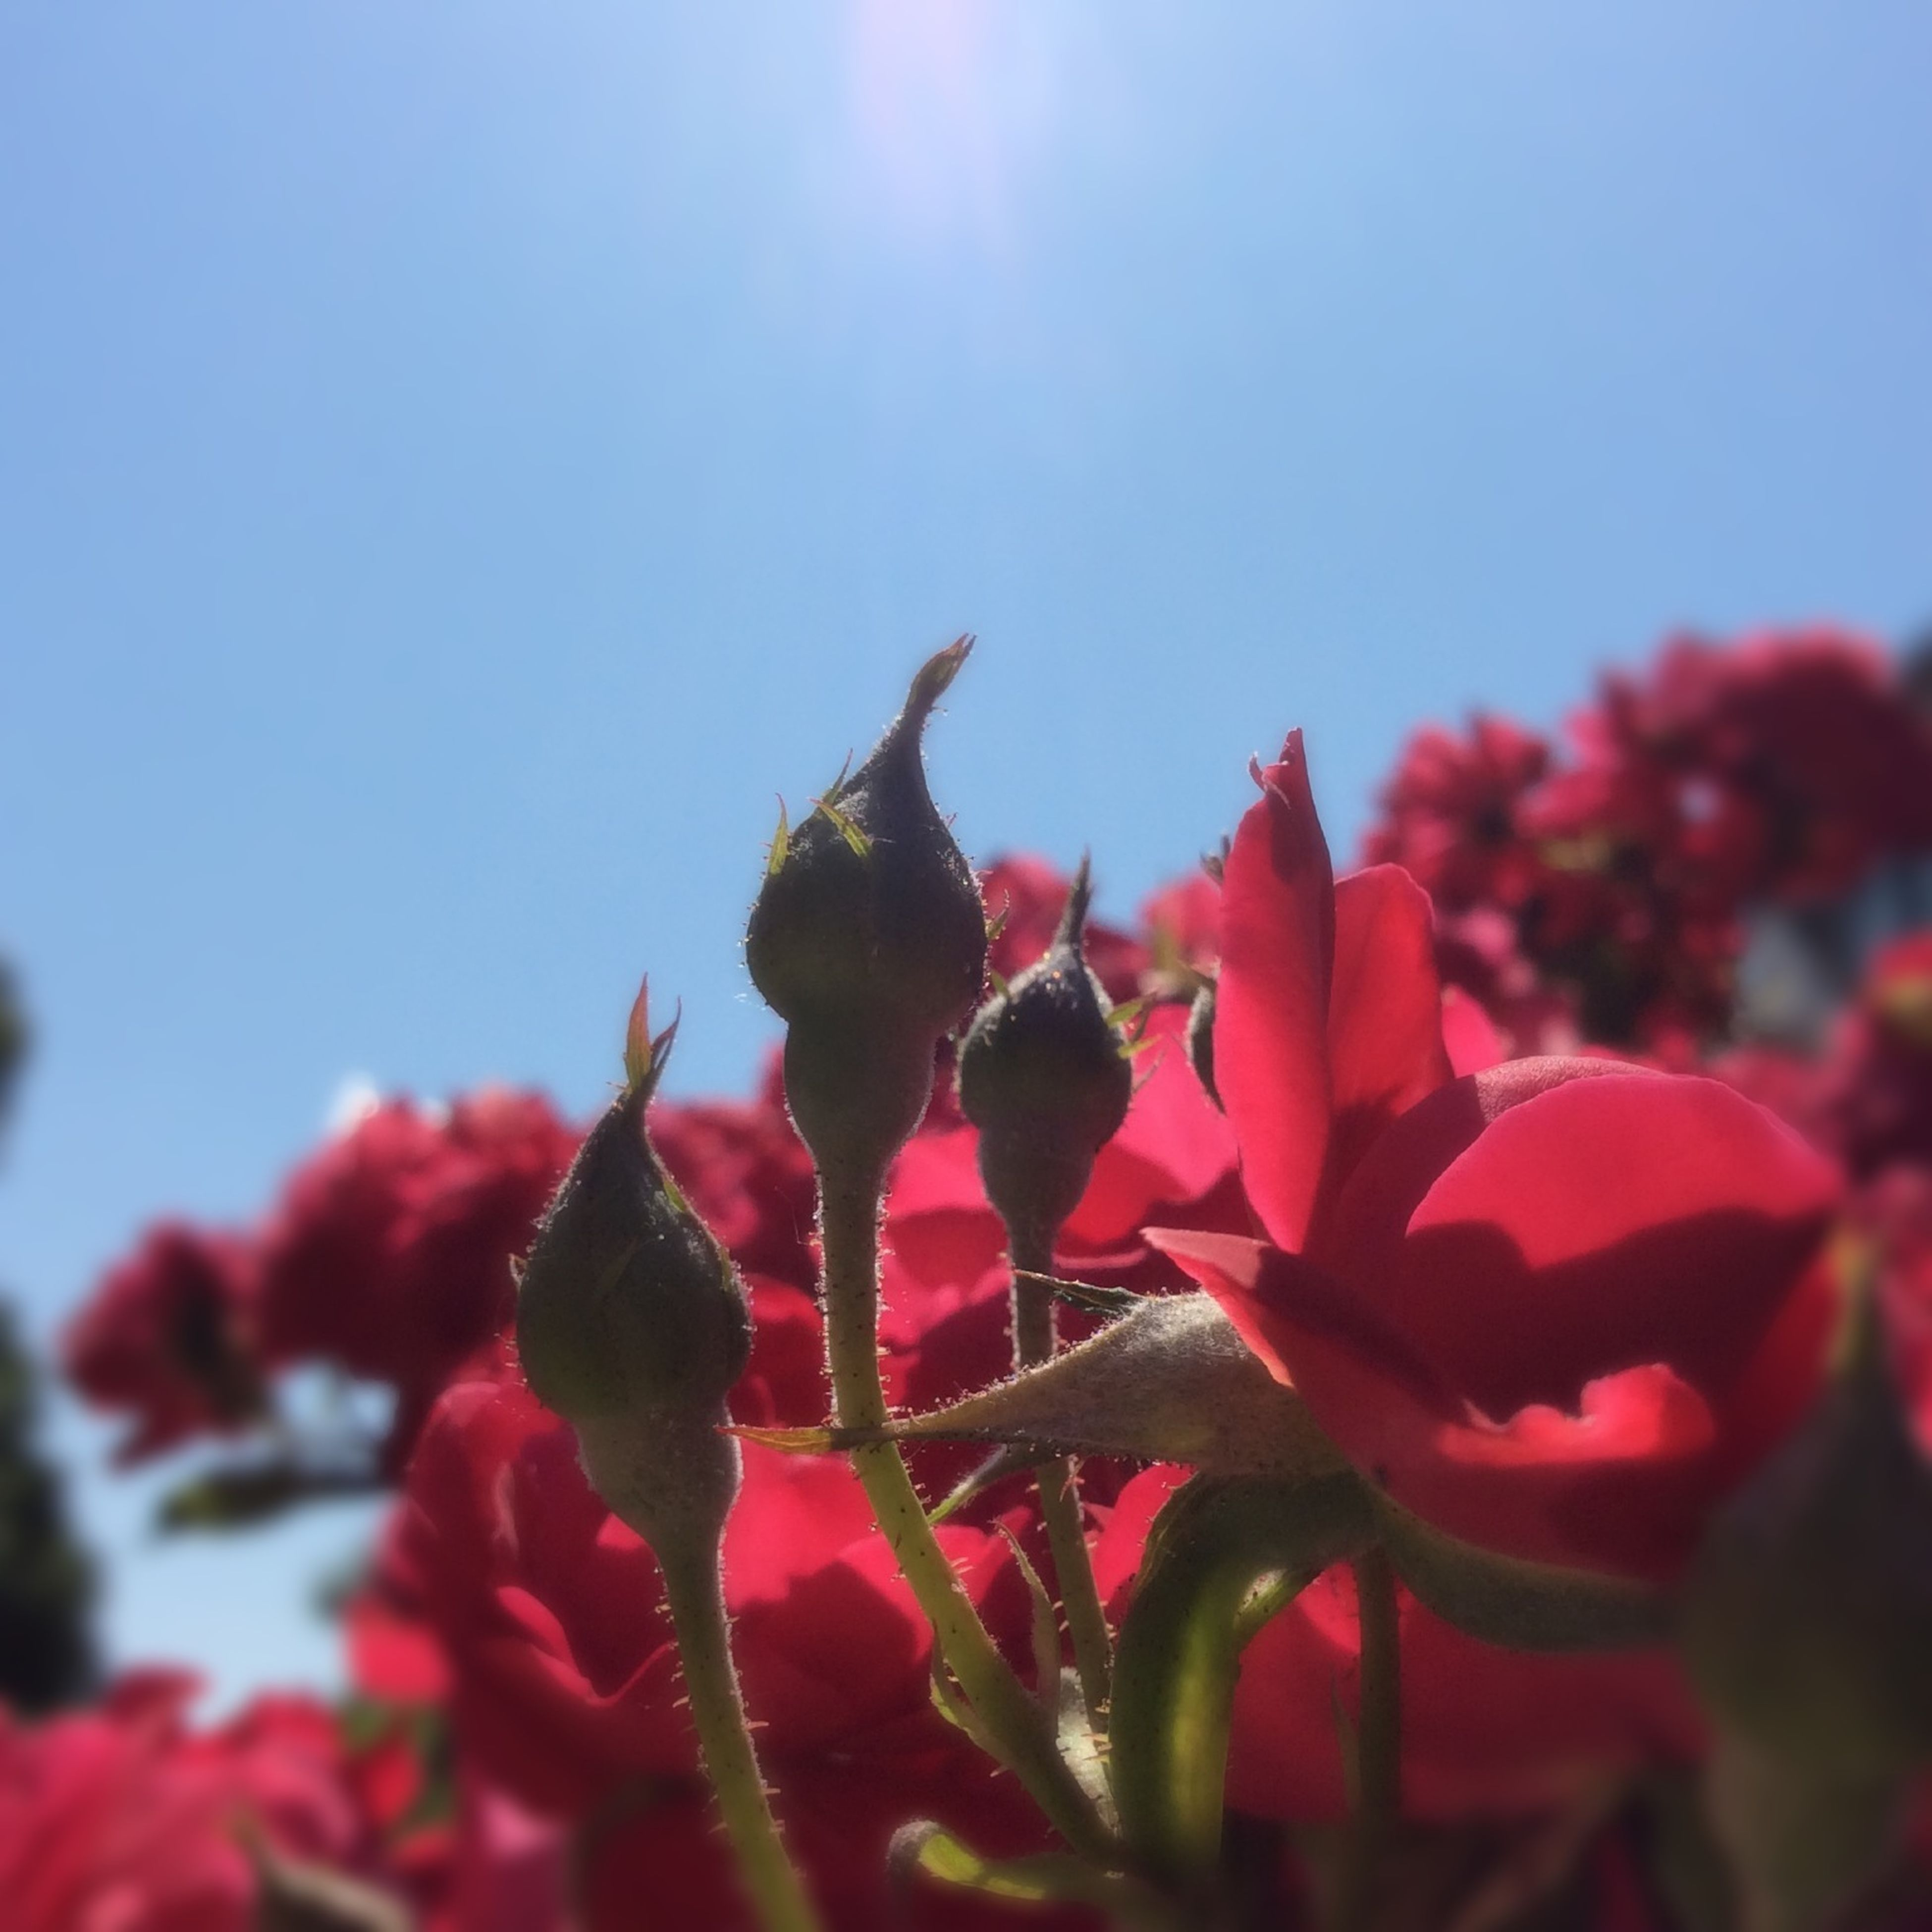 flower, freshness, red, animal themes, clear sky, growth, focus on foreground, fragility, petal, nature, beauty in nature, one animal, close-up, plant, low angle view, animals in the wild, blooming, flower head, sky, sunlight